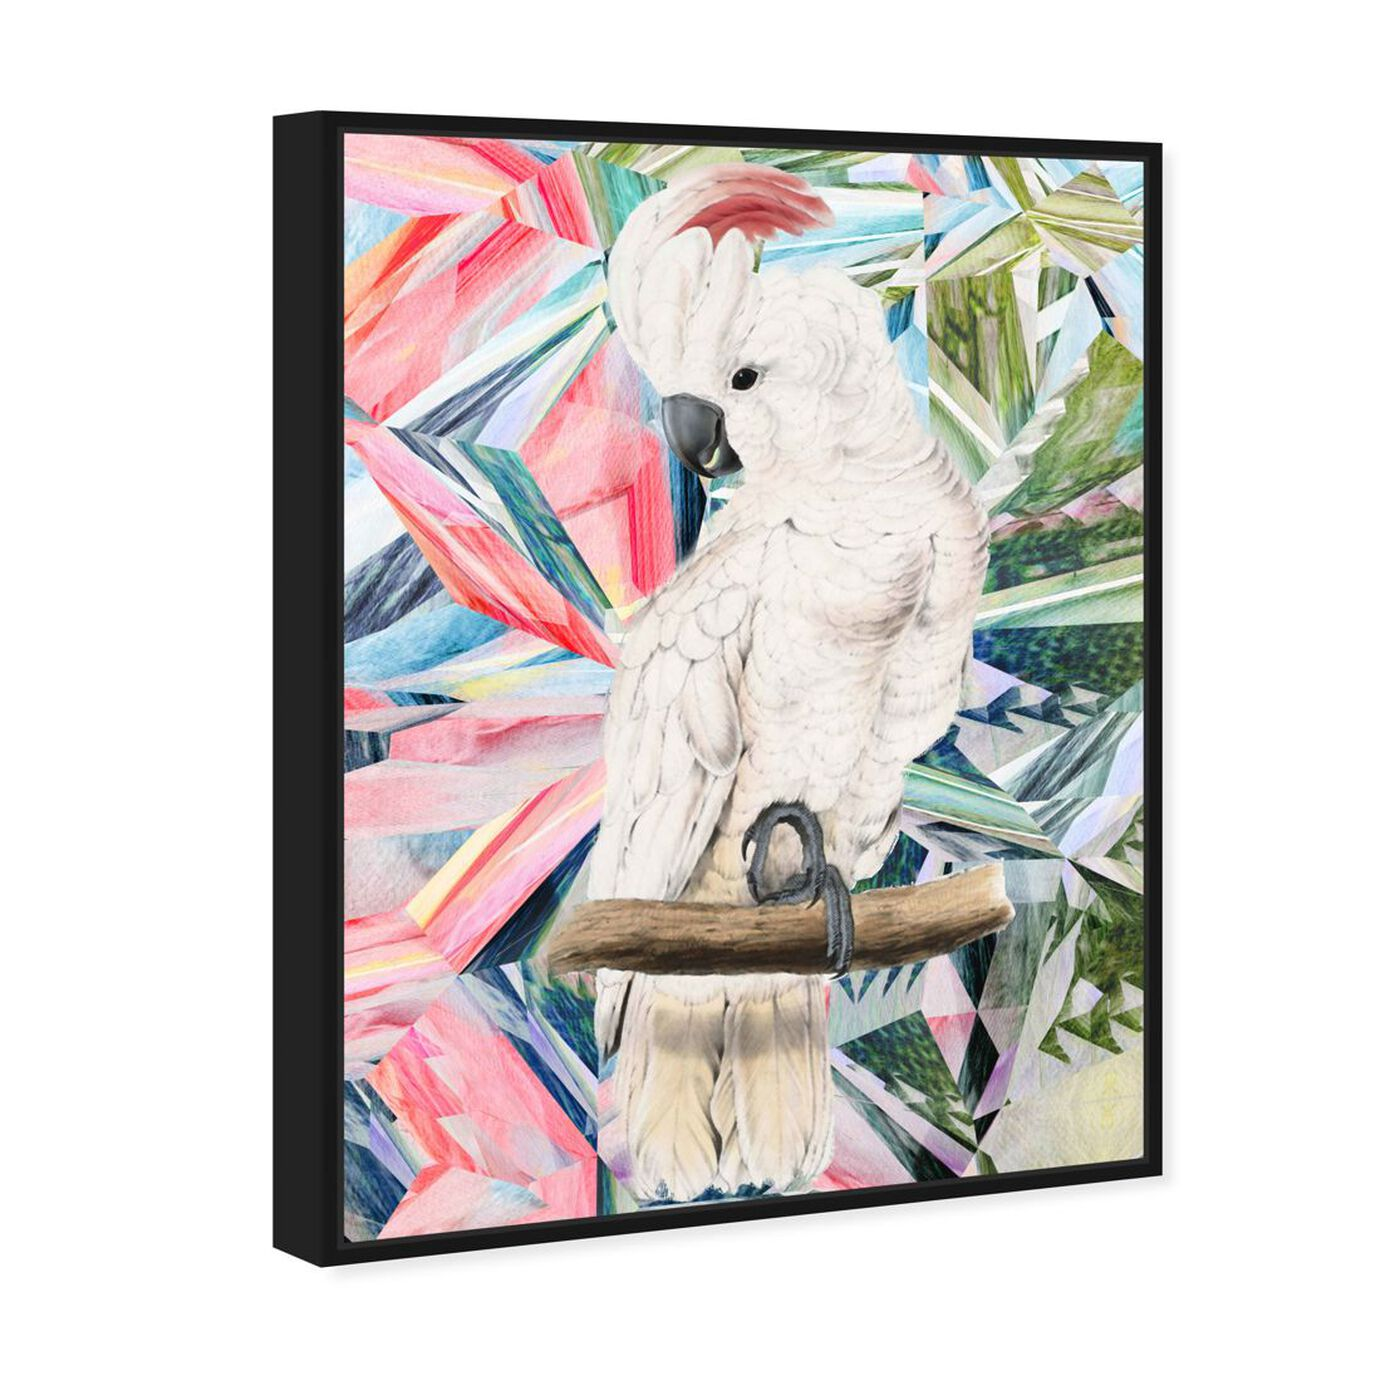 Angled view of Modern Cockatoo featuring animals and birds art.